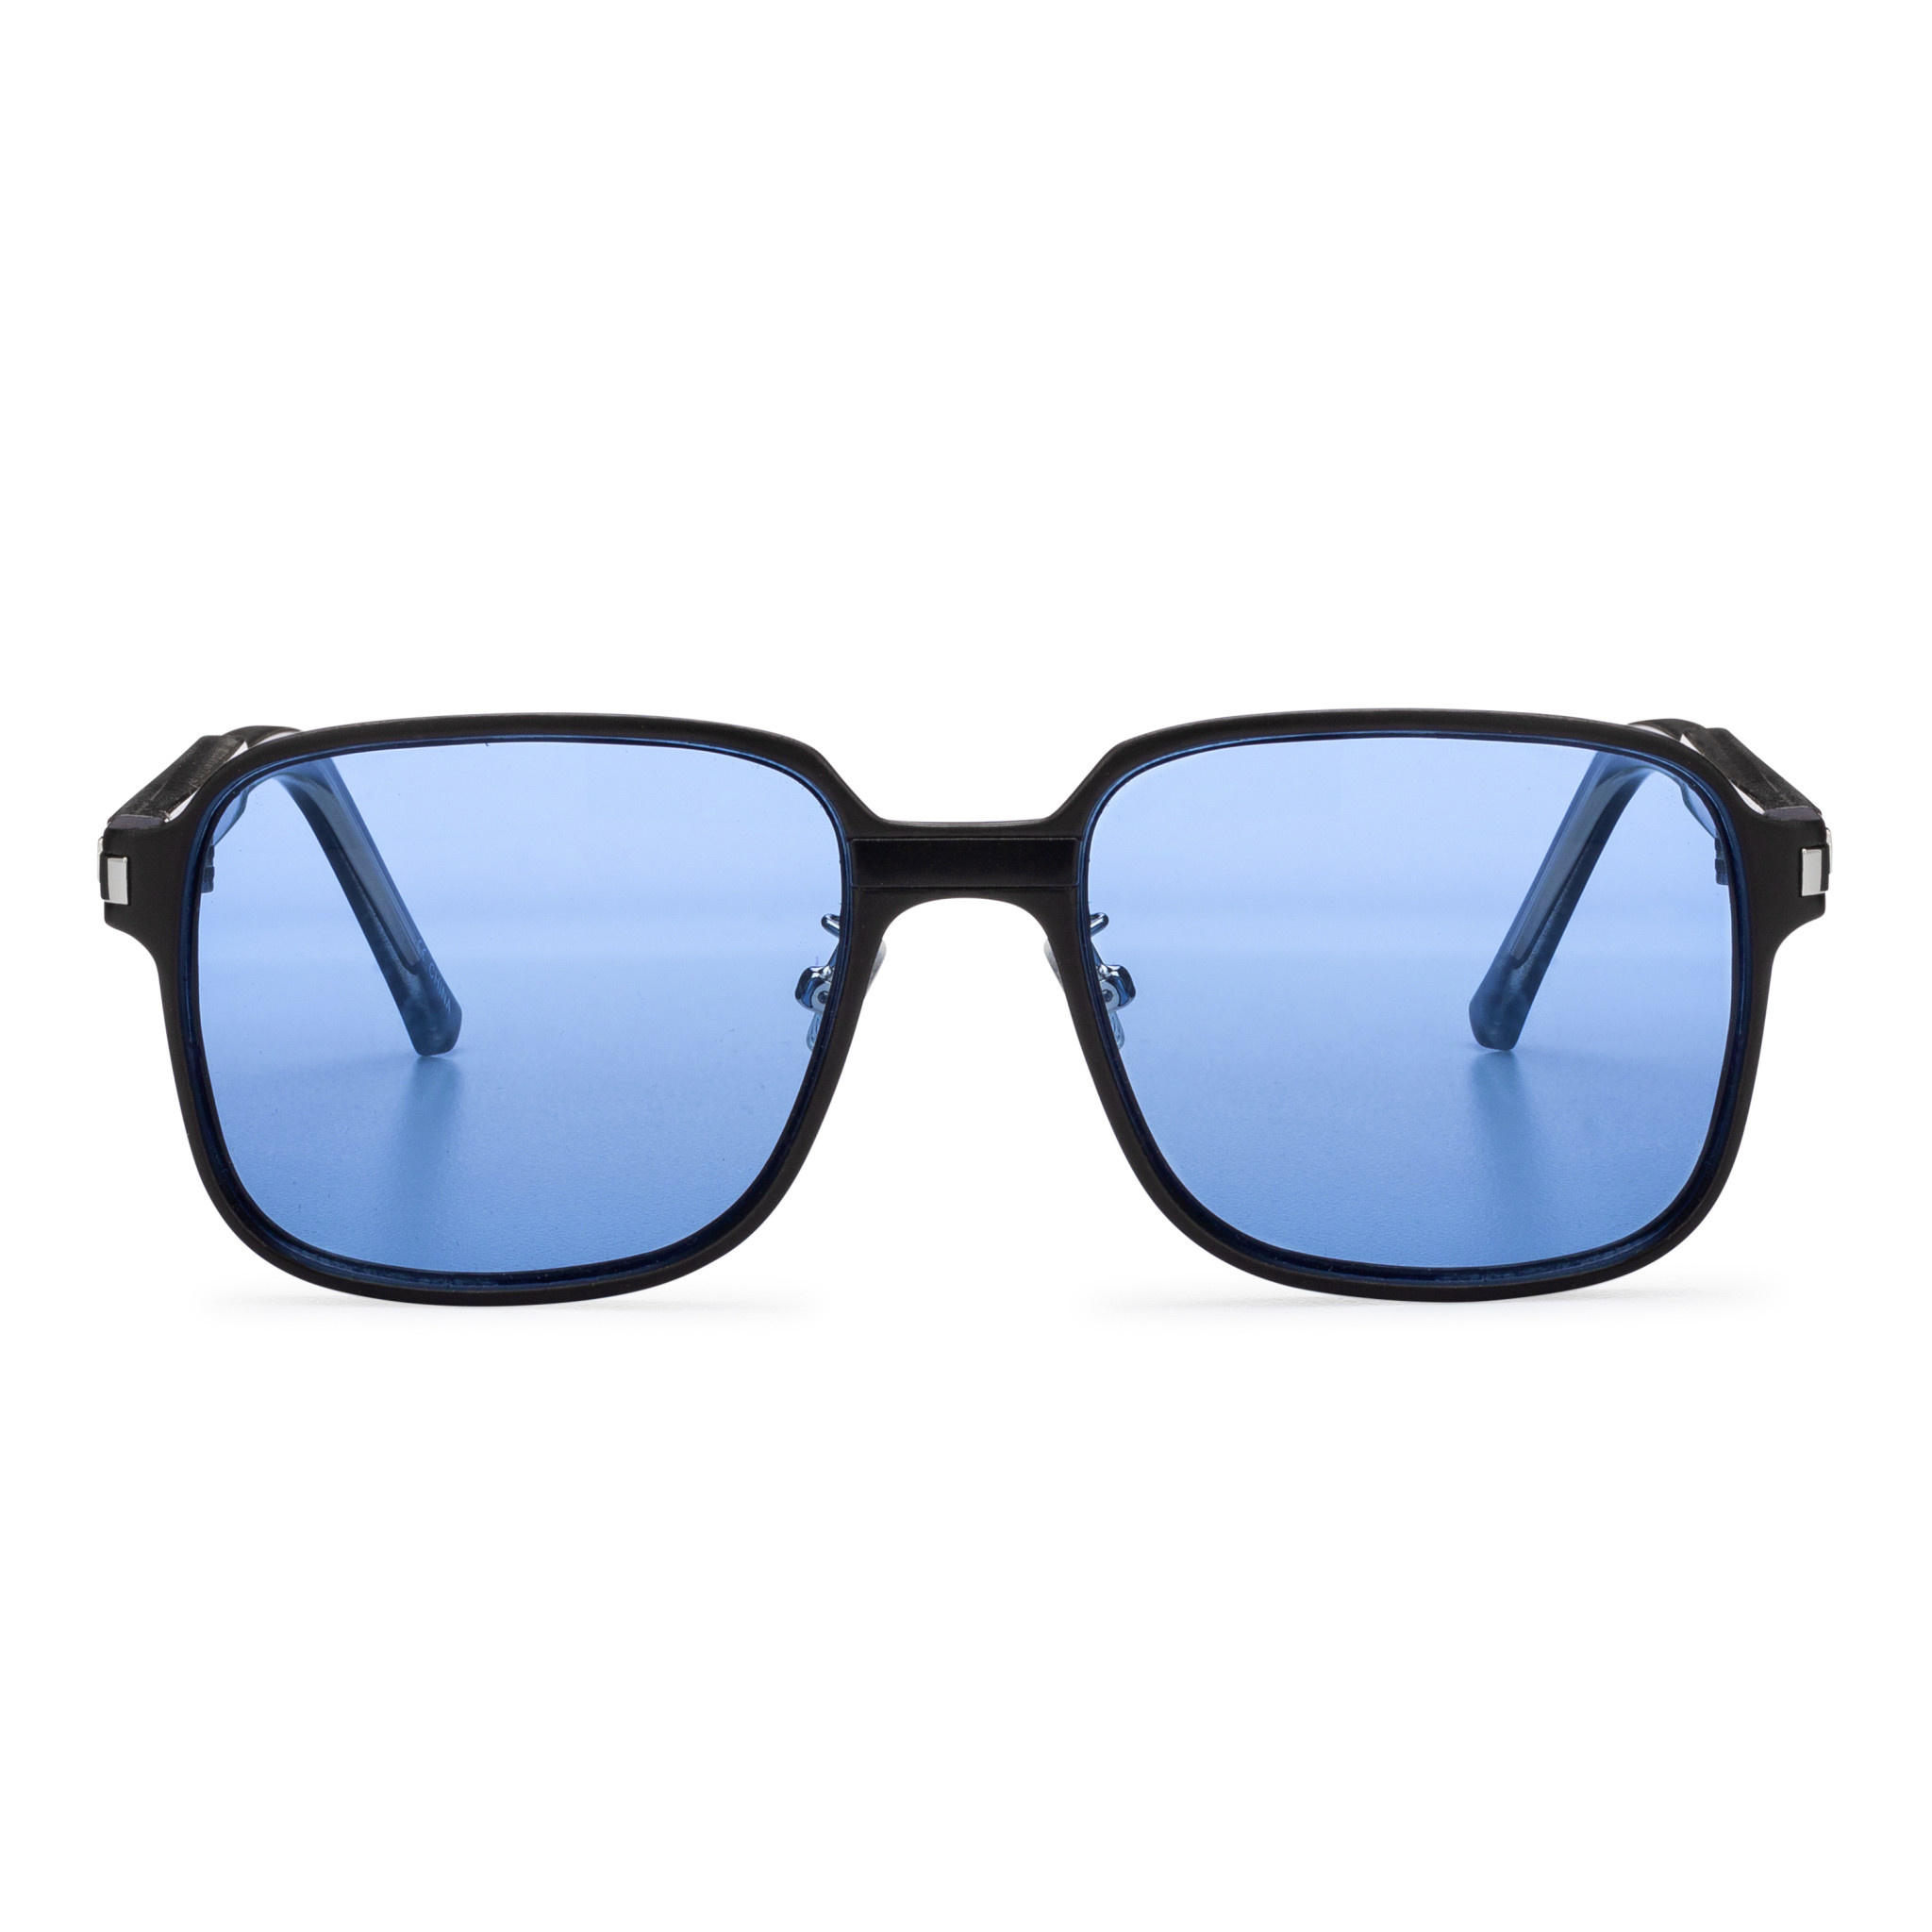 Spitfire Spitfire BTA - Matte Black/Windsor Blue